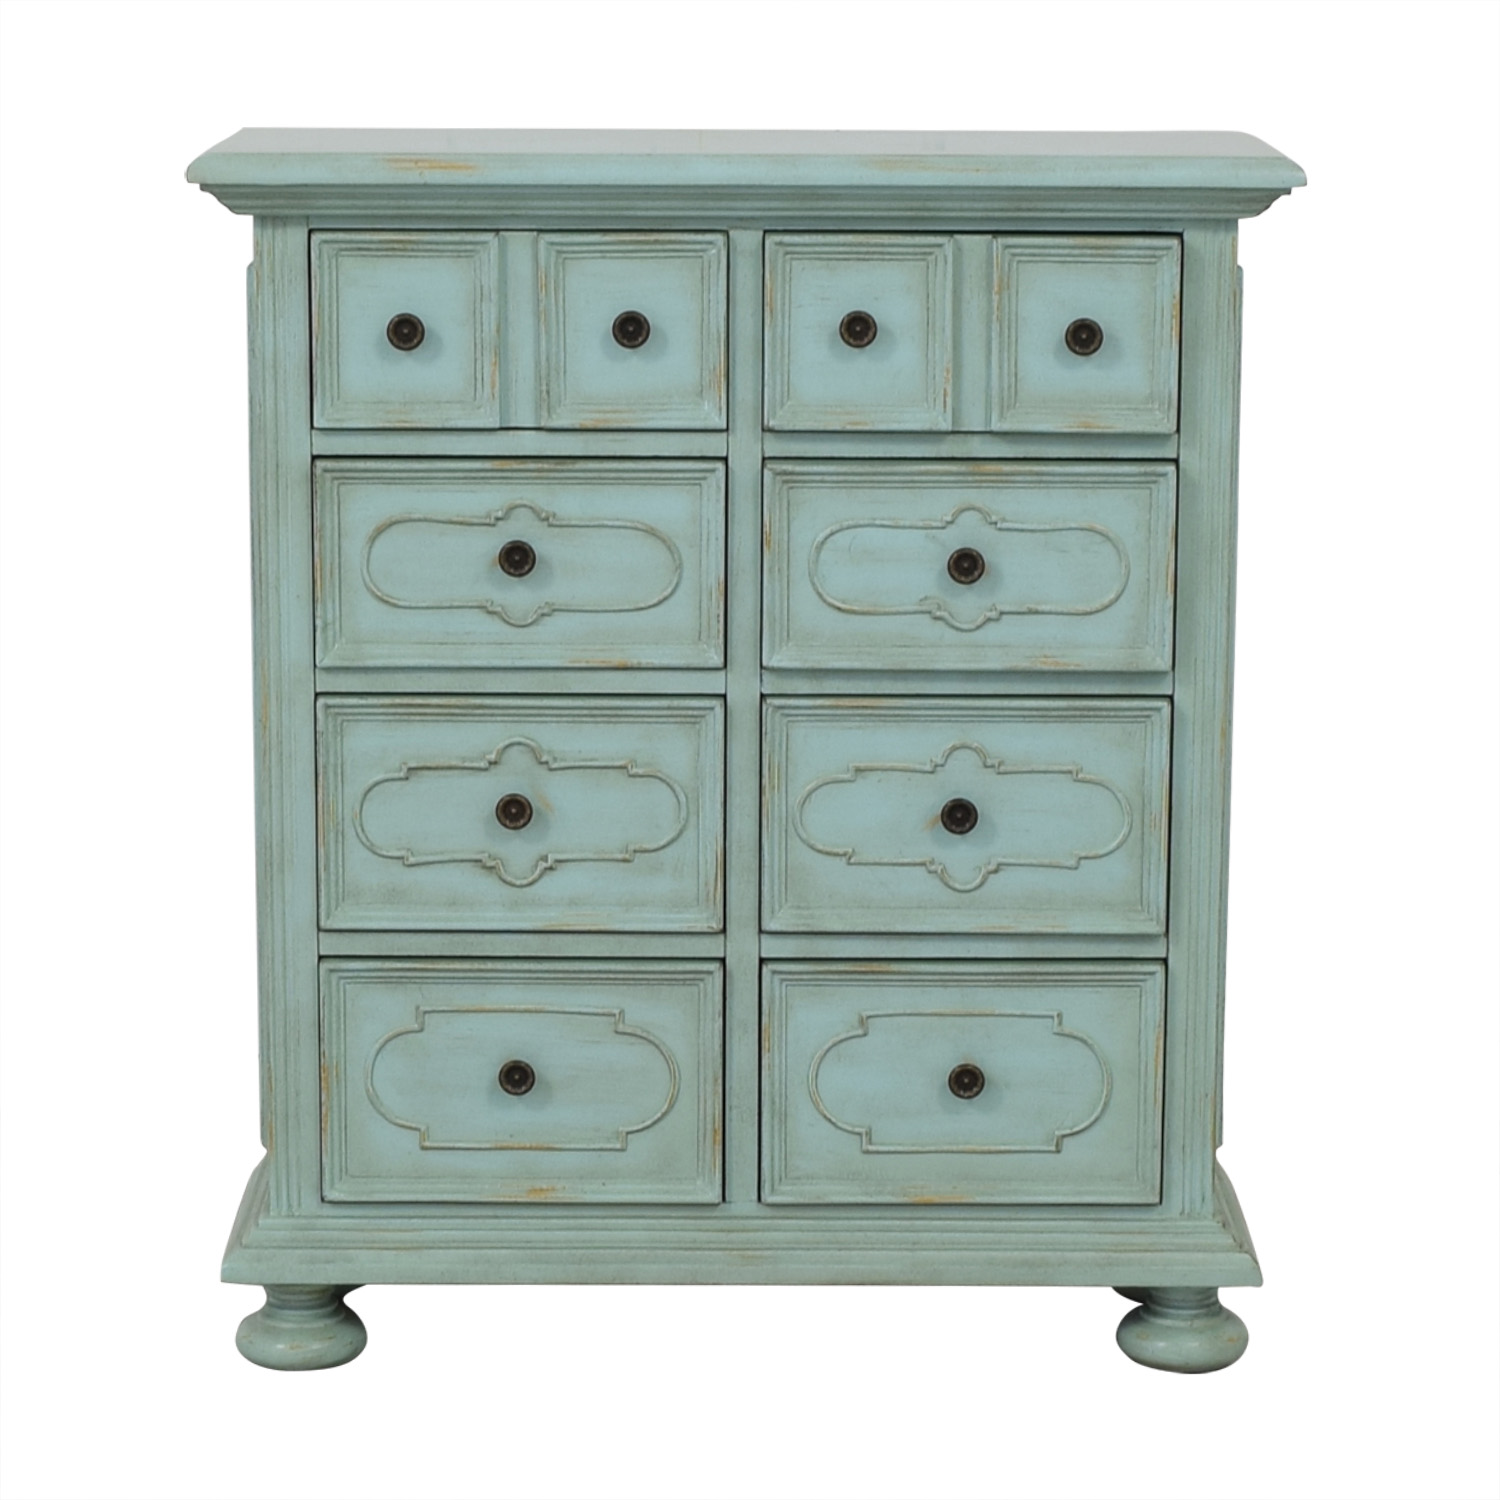 Joss & Main Joss & Main Distressed Dresser